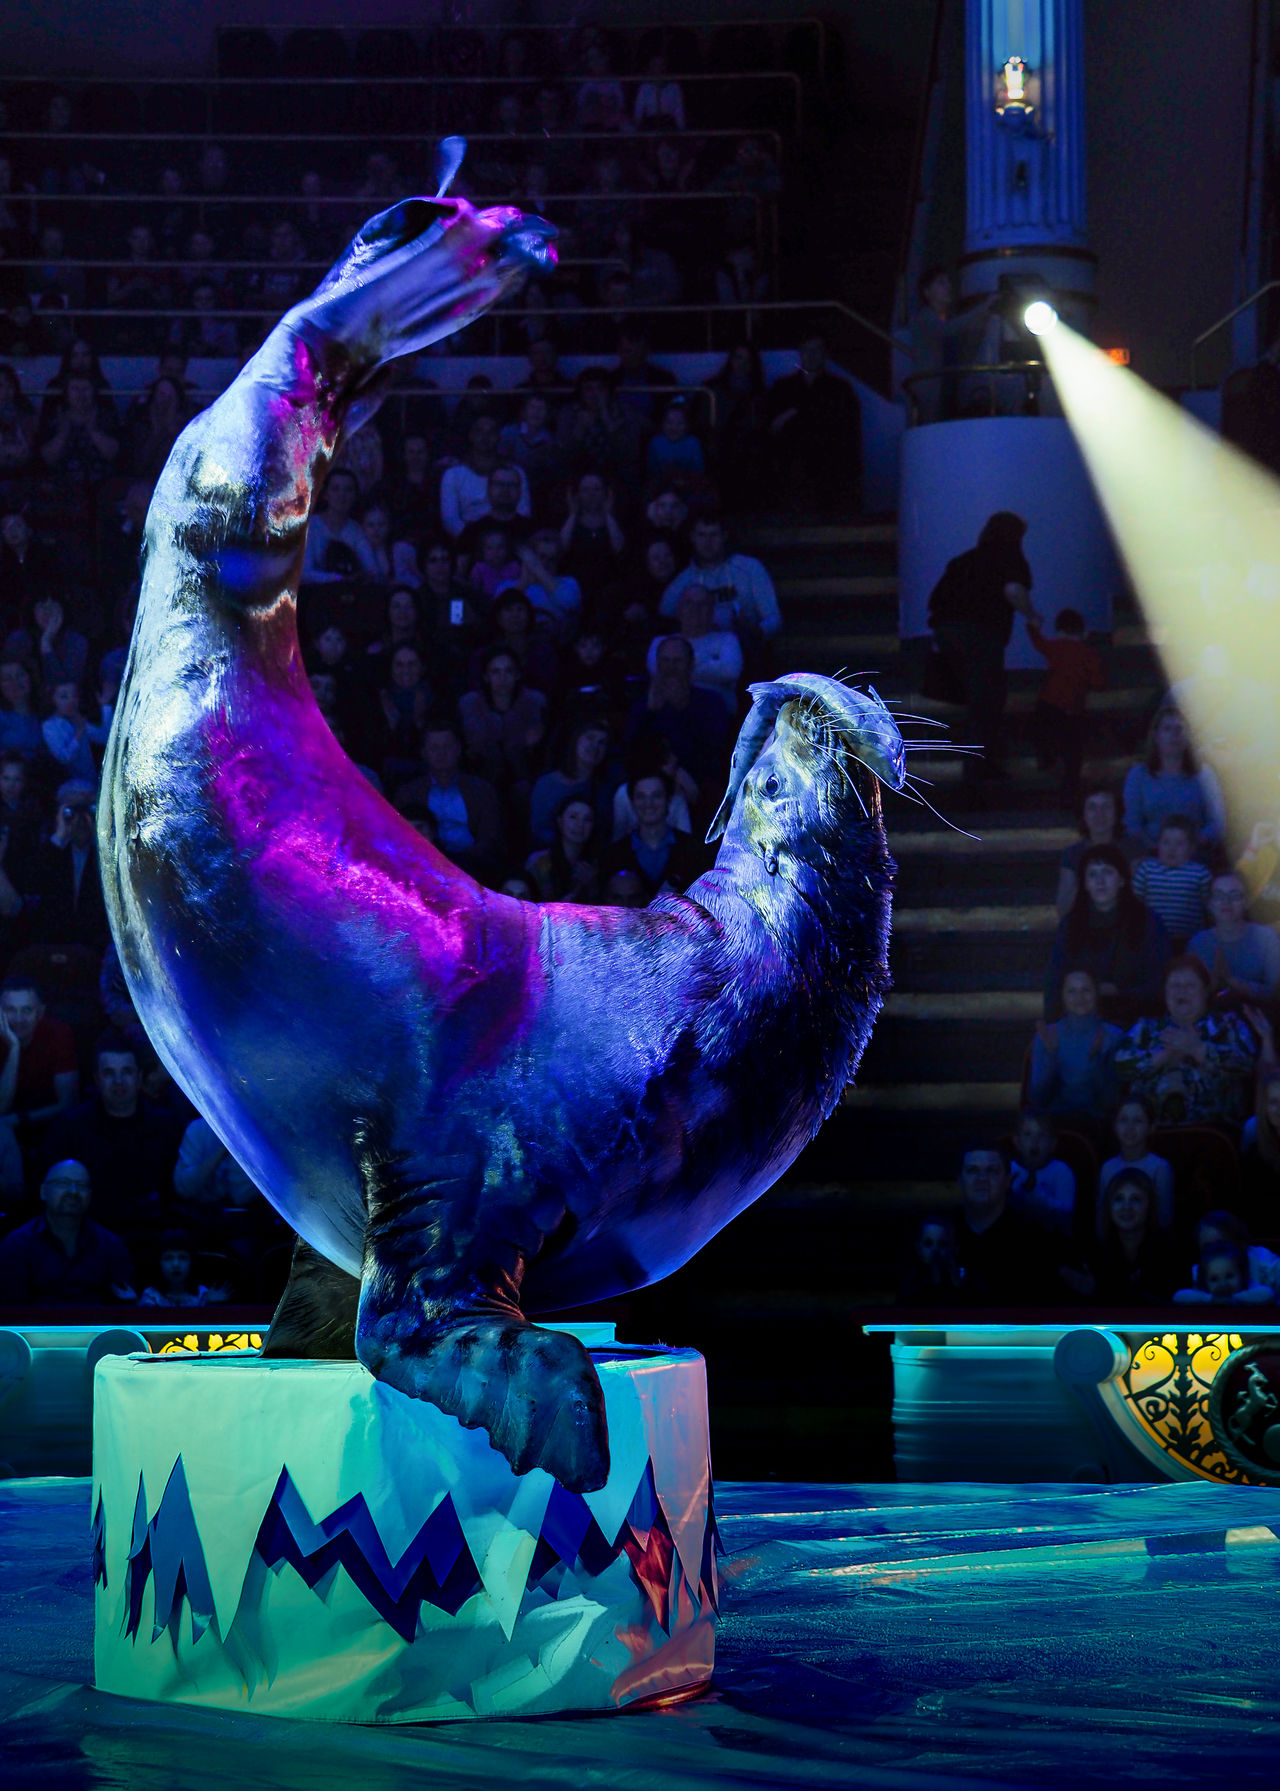 Russia, Moscow, circus, Russian circus, Nikulin Circus, sea lion Adult Adults Only Circus Day Indoors  Moscow Nikulin Circus One Man Only One Person Only Men People Performance Representing Russia Russian Circus Sea Lion